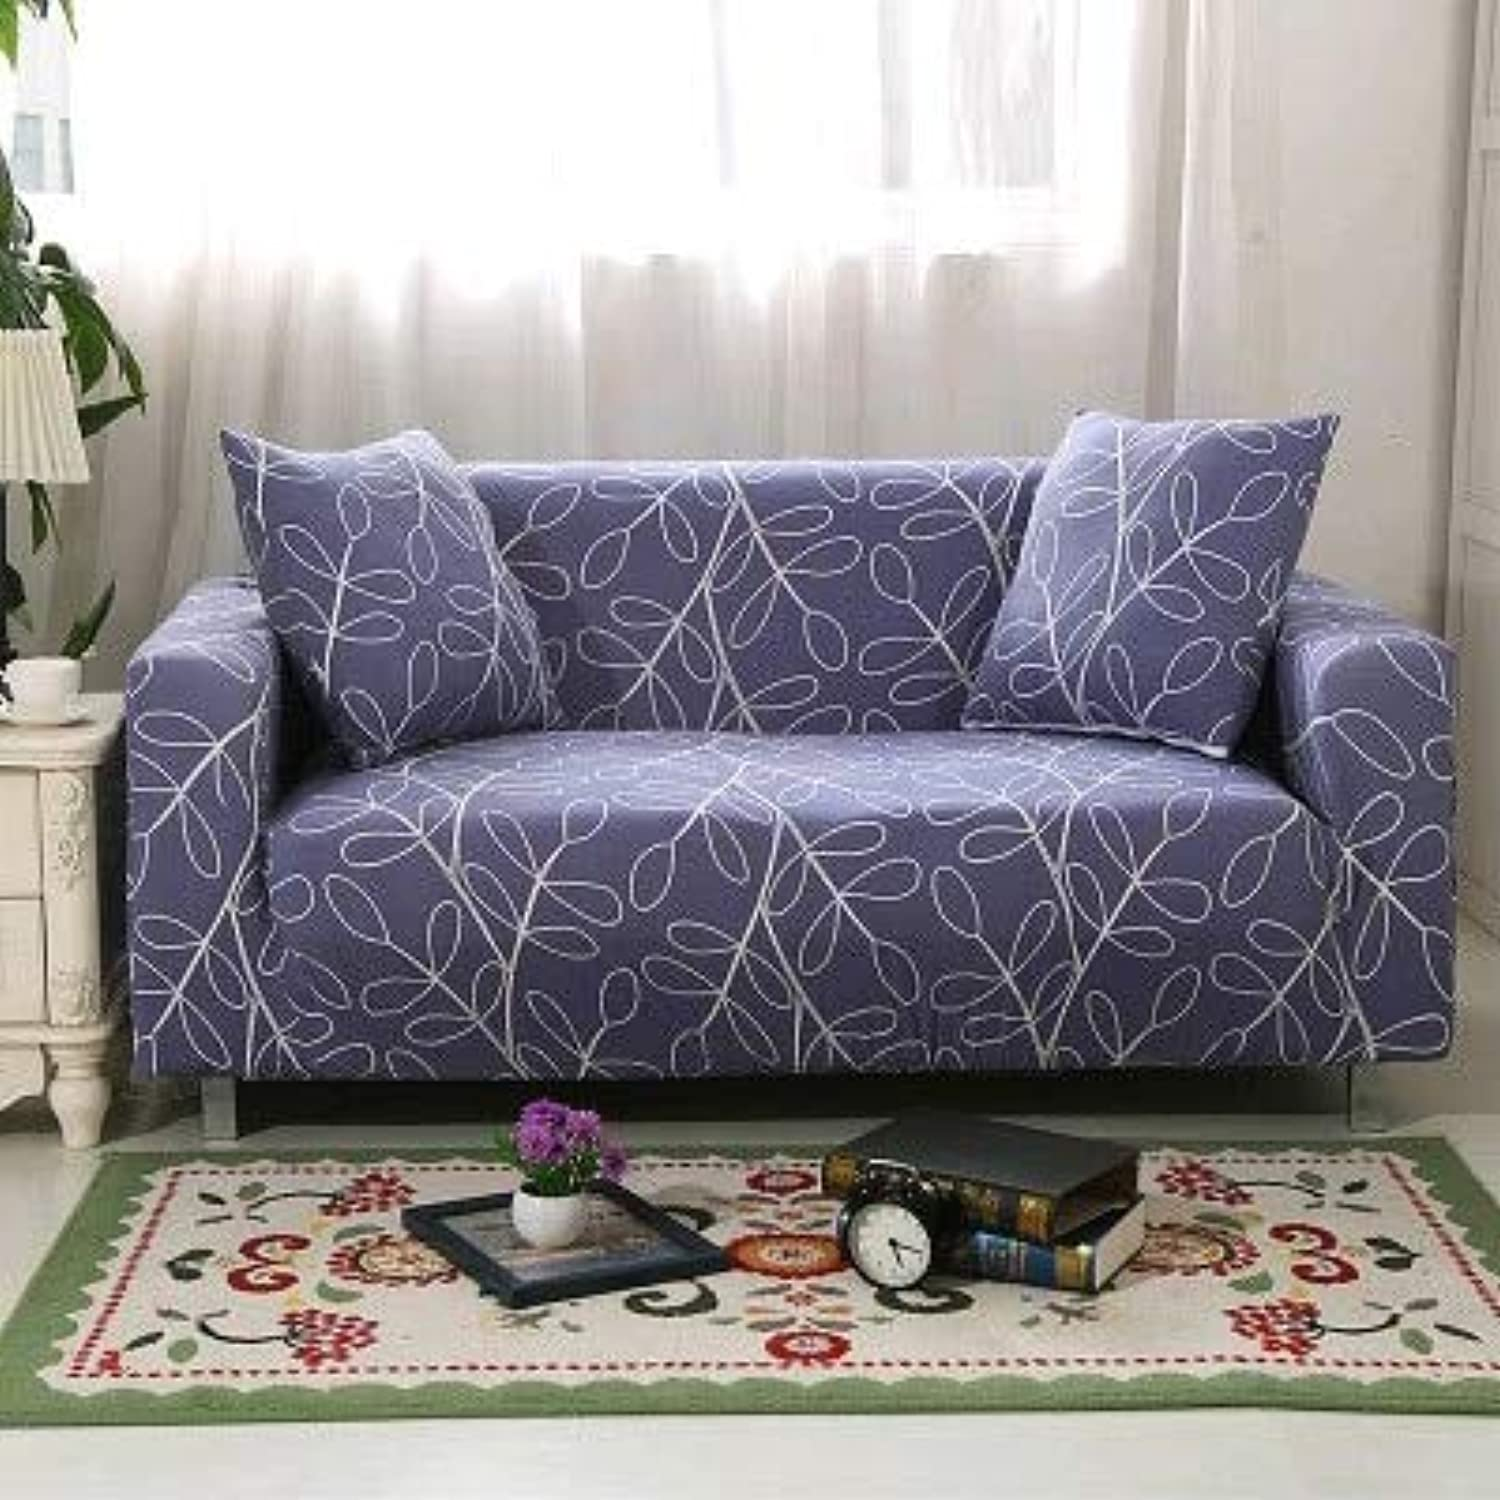 Farmerly Flower Printing Sofa Towel Furniture Predector ...